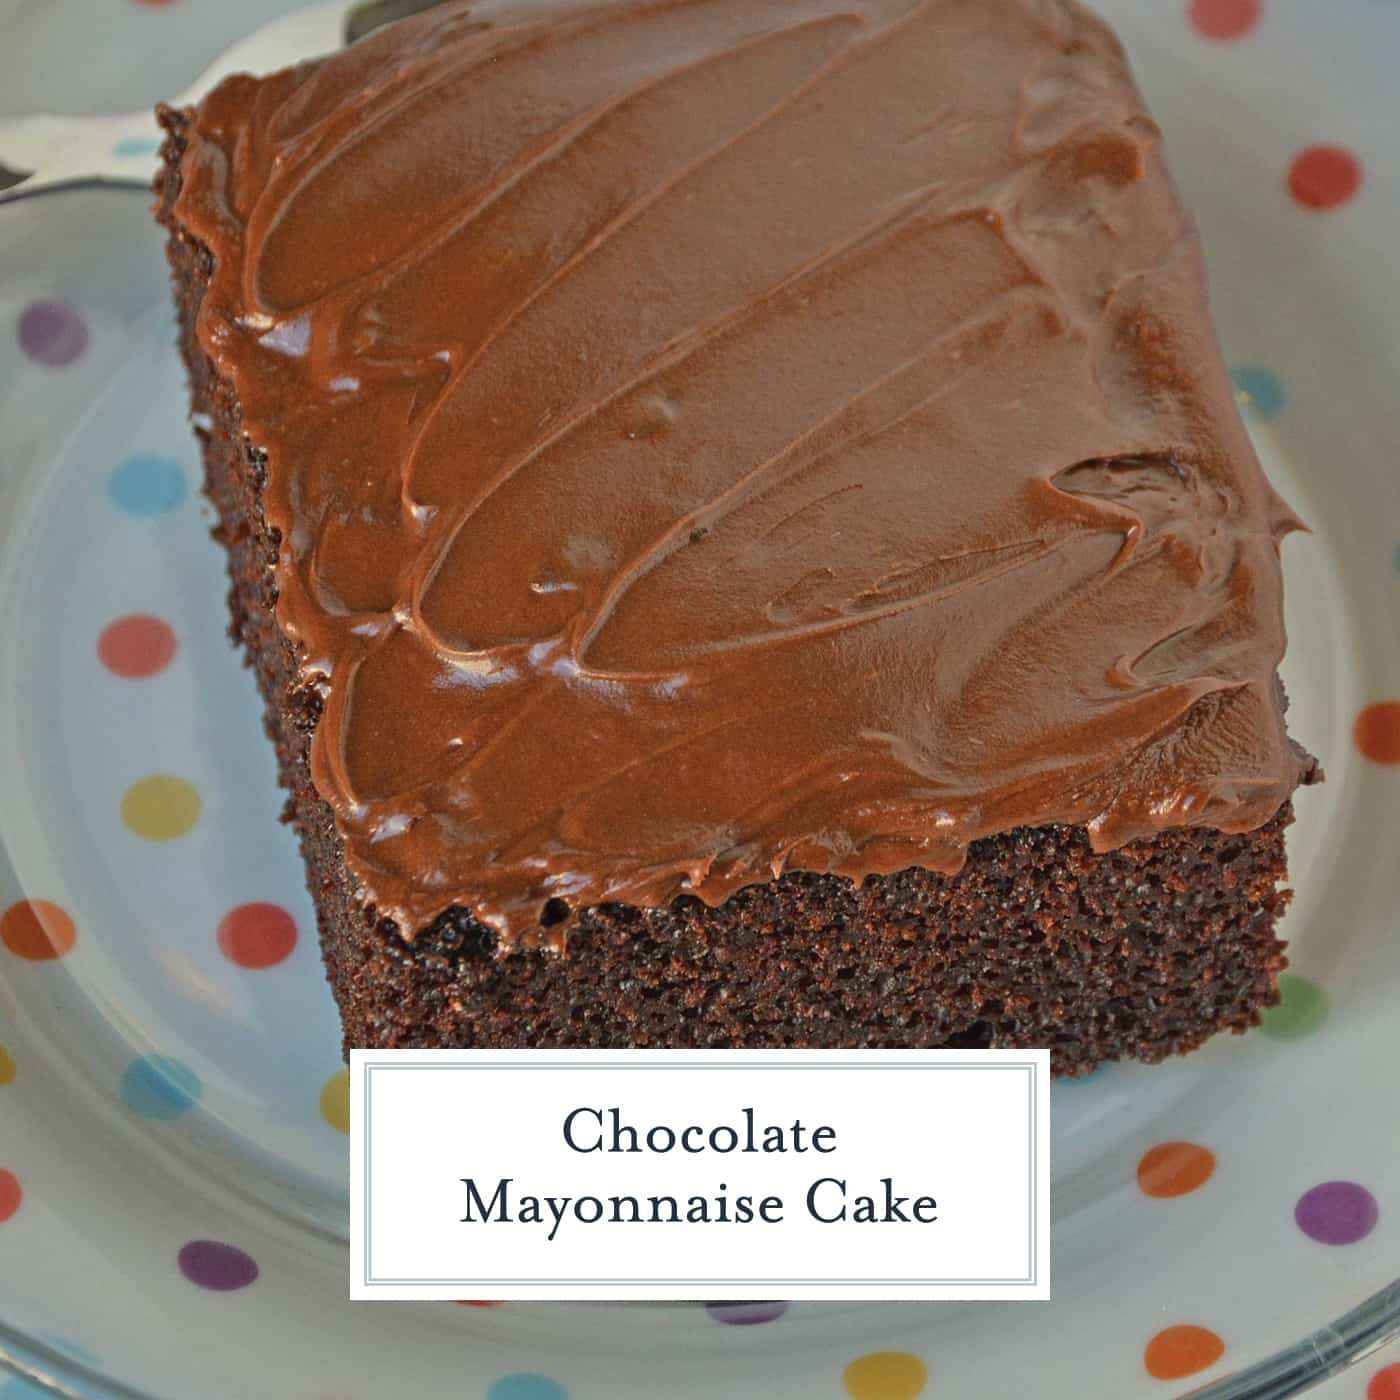 Chocolate Mayonnaise Cake is a moist chocolate cake in a 9x13 pan with chocolate buttercream frosting. One of my favorite recipes from Grandma! #chocolatemayonnaisecake #chocolatecake #sheetcakerecipes #chocolatecakefromscratch www.savoryexperiments.com